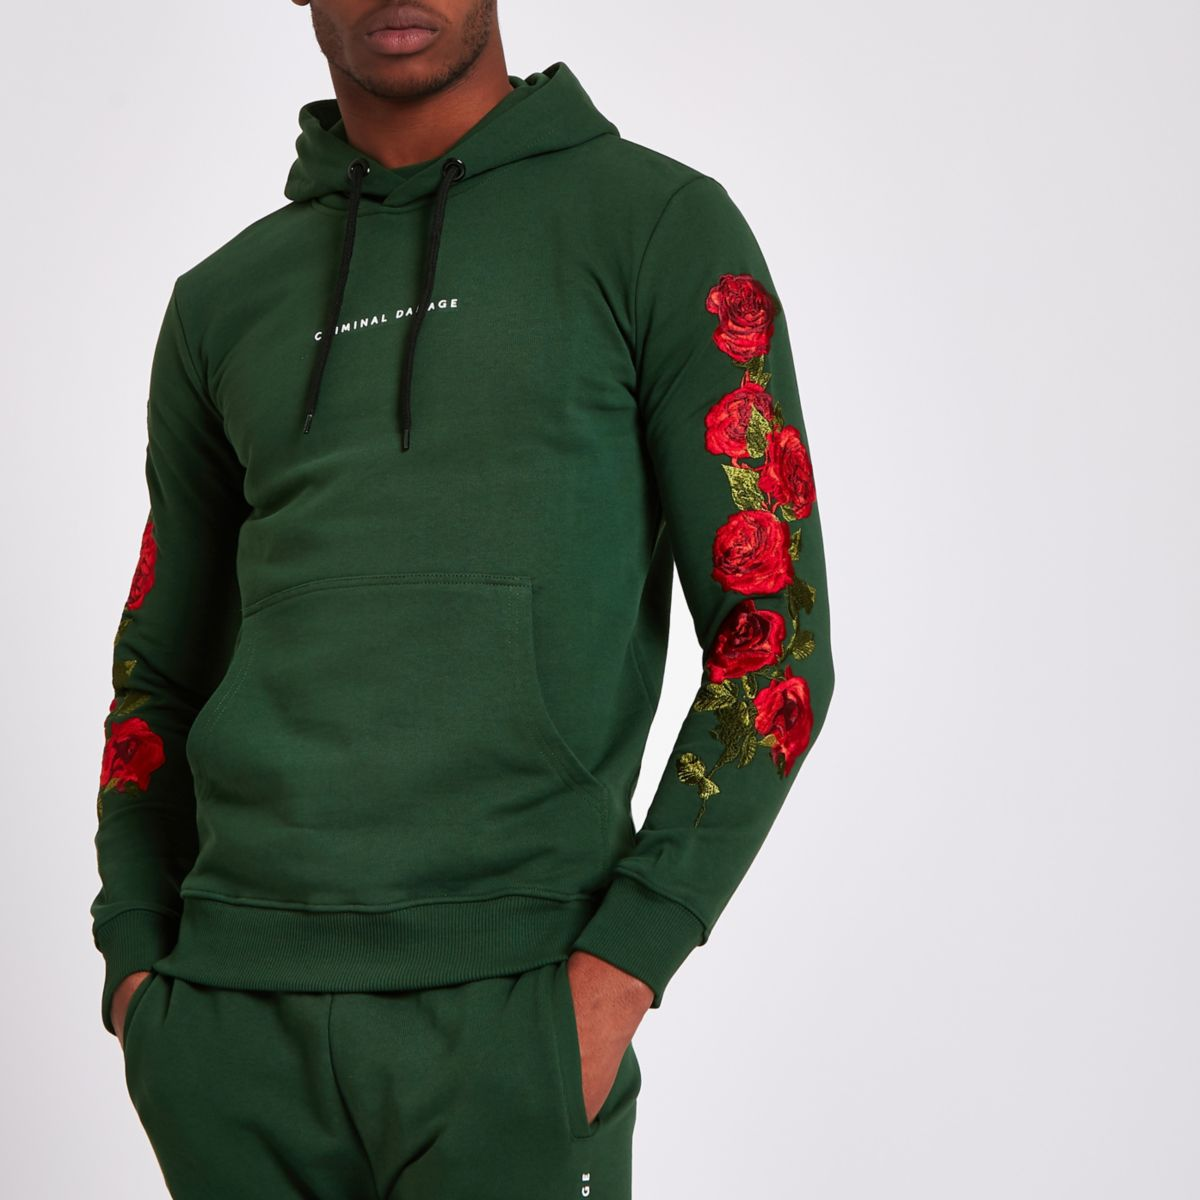 River Island Mens Criminal Damage Black rose embroidered hoodie Criminal Damage Clearance 2018 New Styles Sale Online Free Shipping Best Place Buy Online Authentic Xq5sGnfd